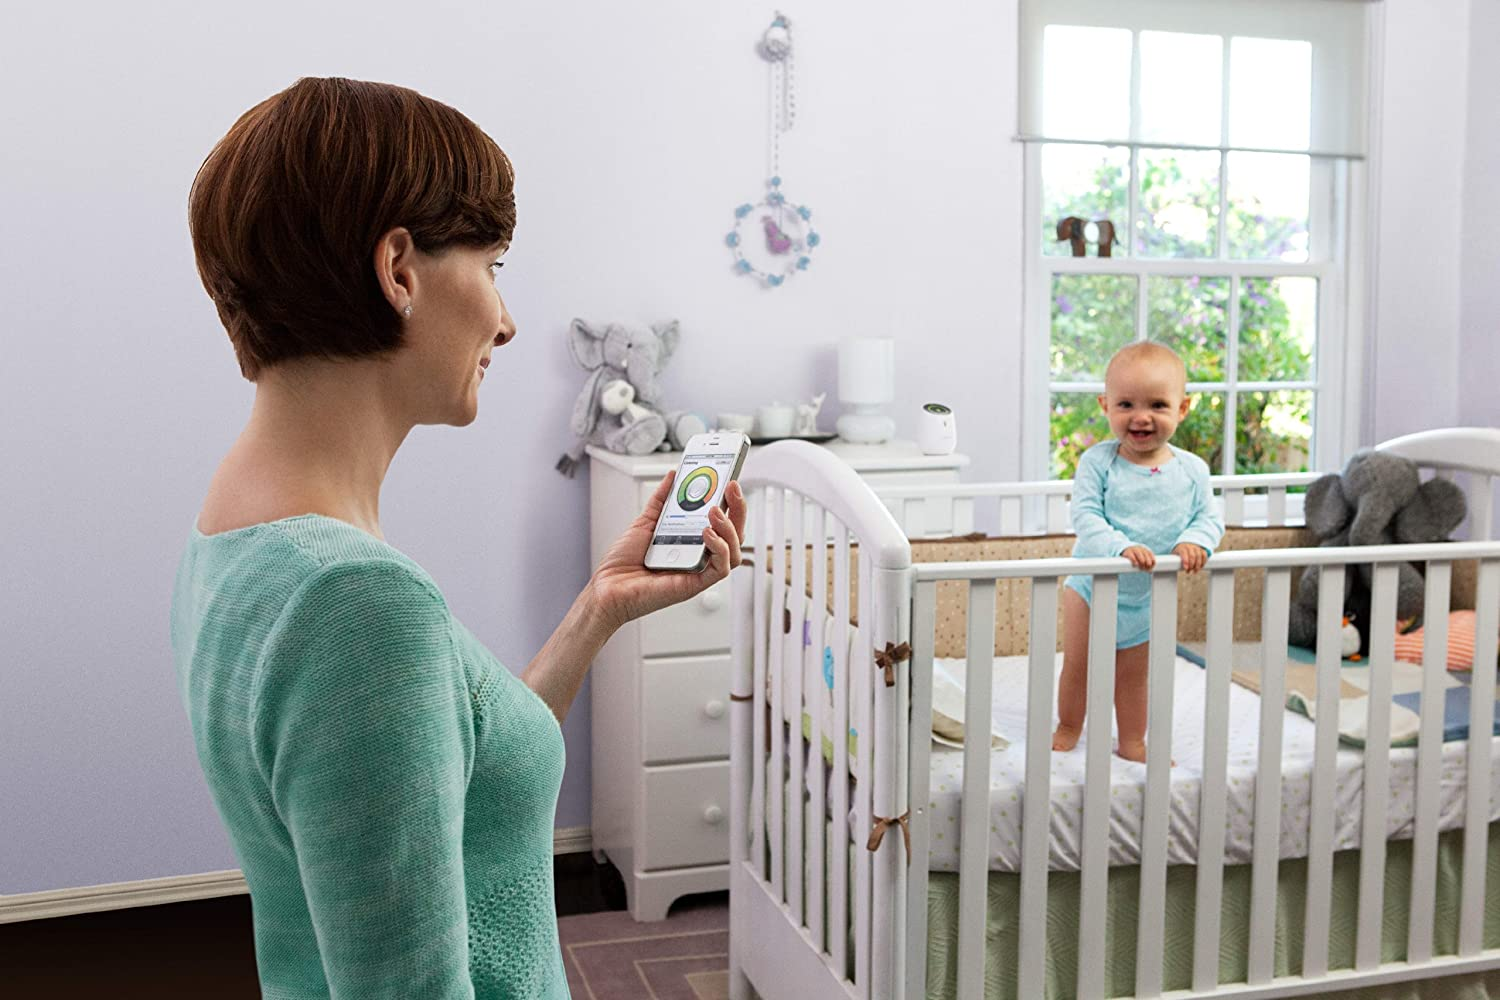 baby room monitors. Belkin WeMo Baby Monitor For Apple IPhone, IPad, And IPod Touch: Amazon.ca: Cell Phones \u0026 Accessories Room Monitors Amazon.ca